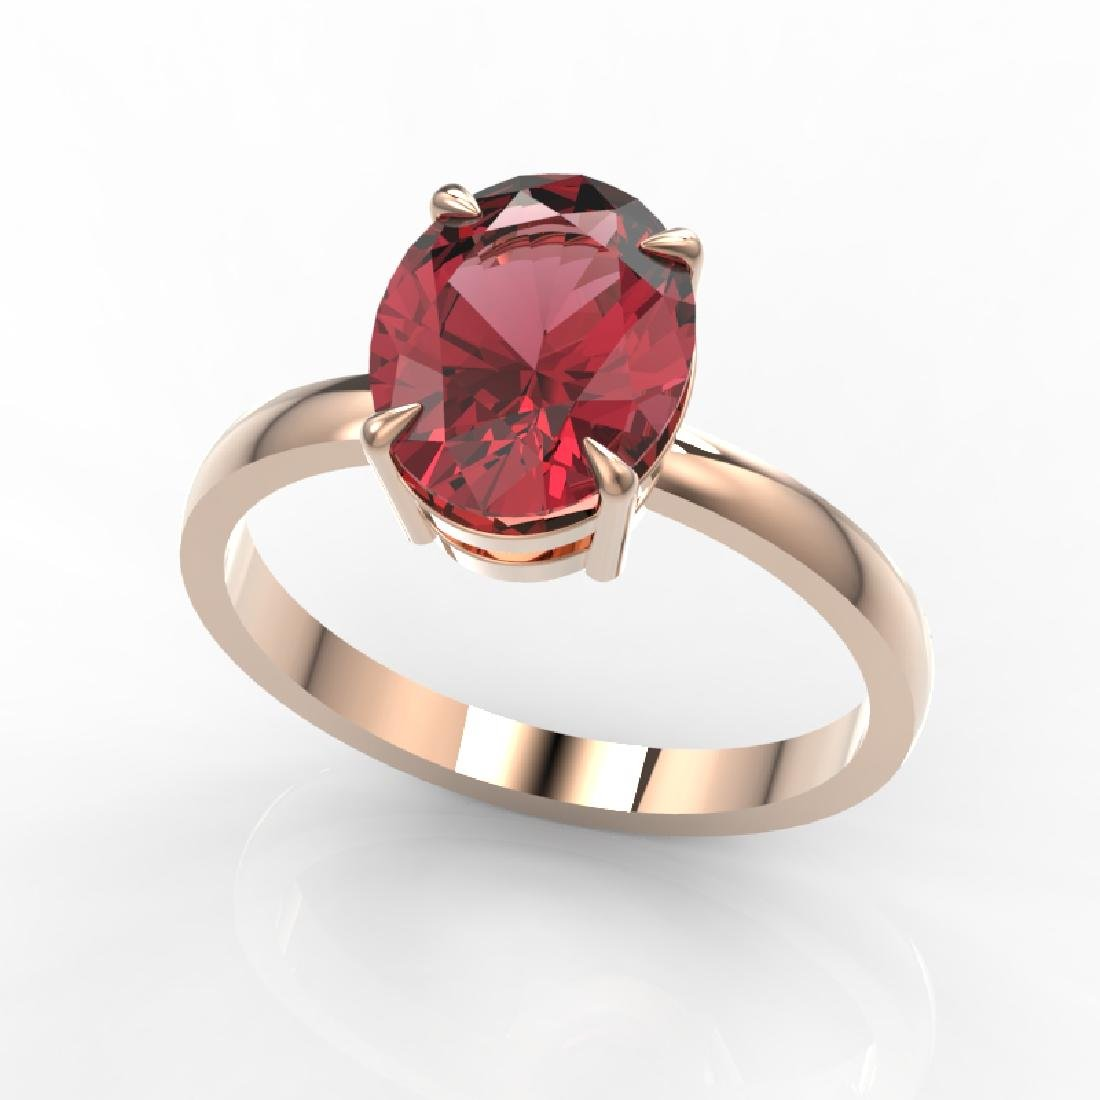 3 CTW Pink Tourmaline Designer Inspired Solitaire Ring - 2